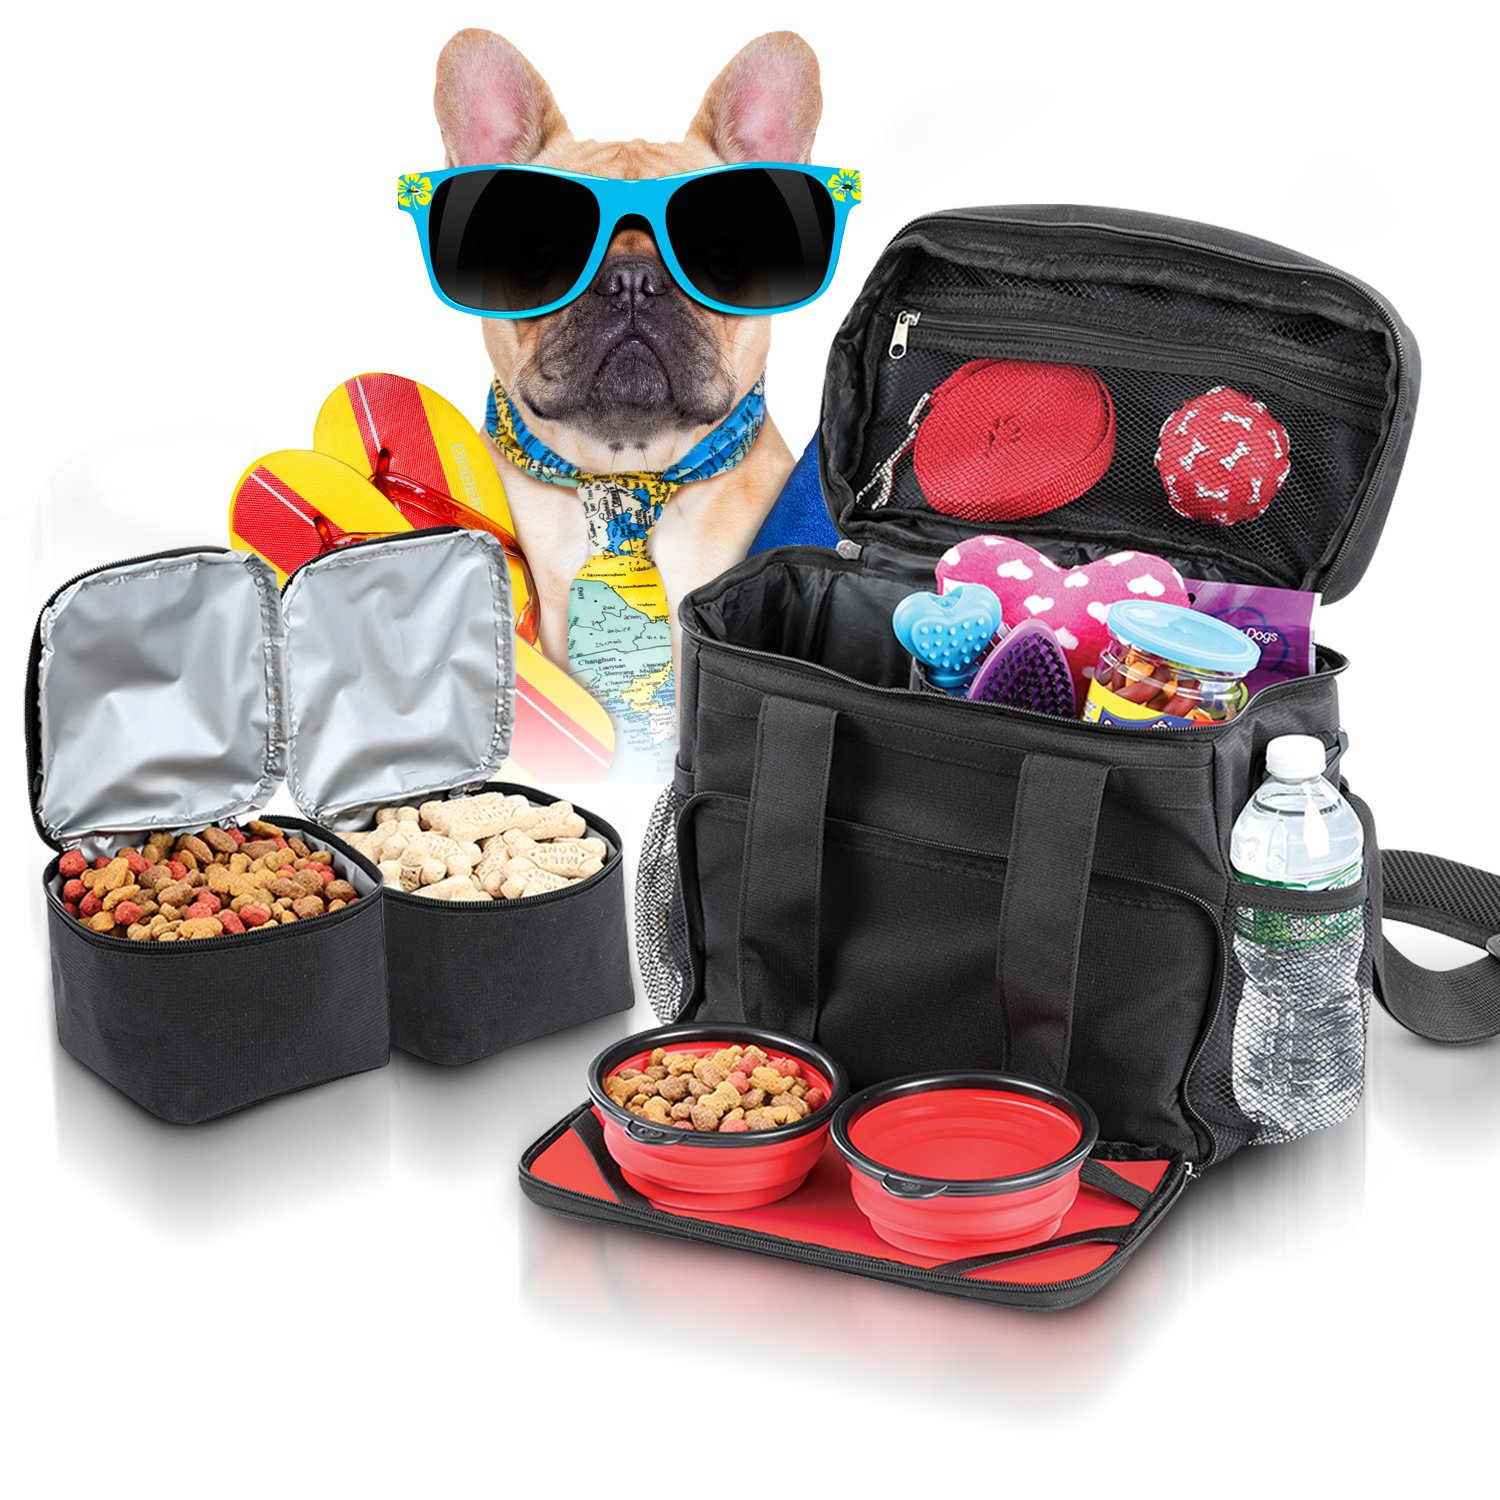 Dog Travel Bag Airline Approved Purse for Accessories - Dog Tote Bag as Pet Travel Bag for Supplies and Dog Luggage Suitcase for Small Medium Large Dogs With 2 Collapsible Doggie Bowls & Food Holders